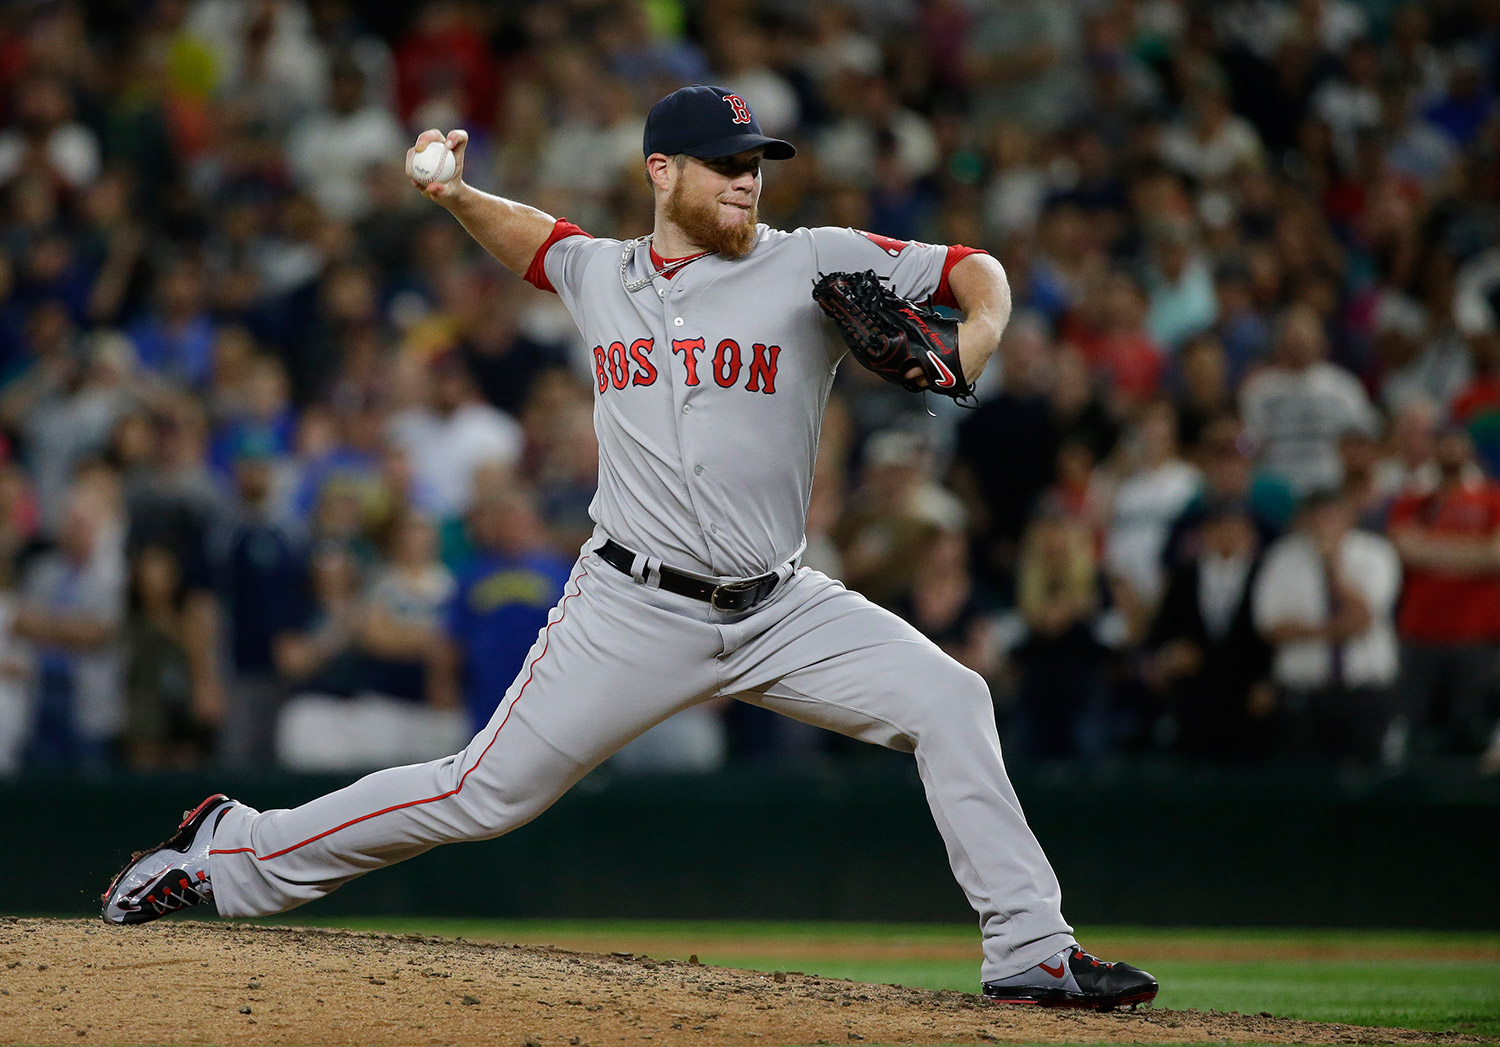 Boston Red Sox pitcher Craig Kimbrel throws against the Seattle Mariners in the 10th inning of Thursday's game in Seattle. Kimbrel picked up the win as the Red Sox beat the Mariners 3-2 in 11 innings.